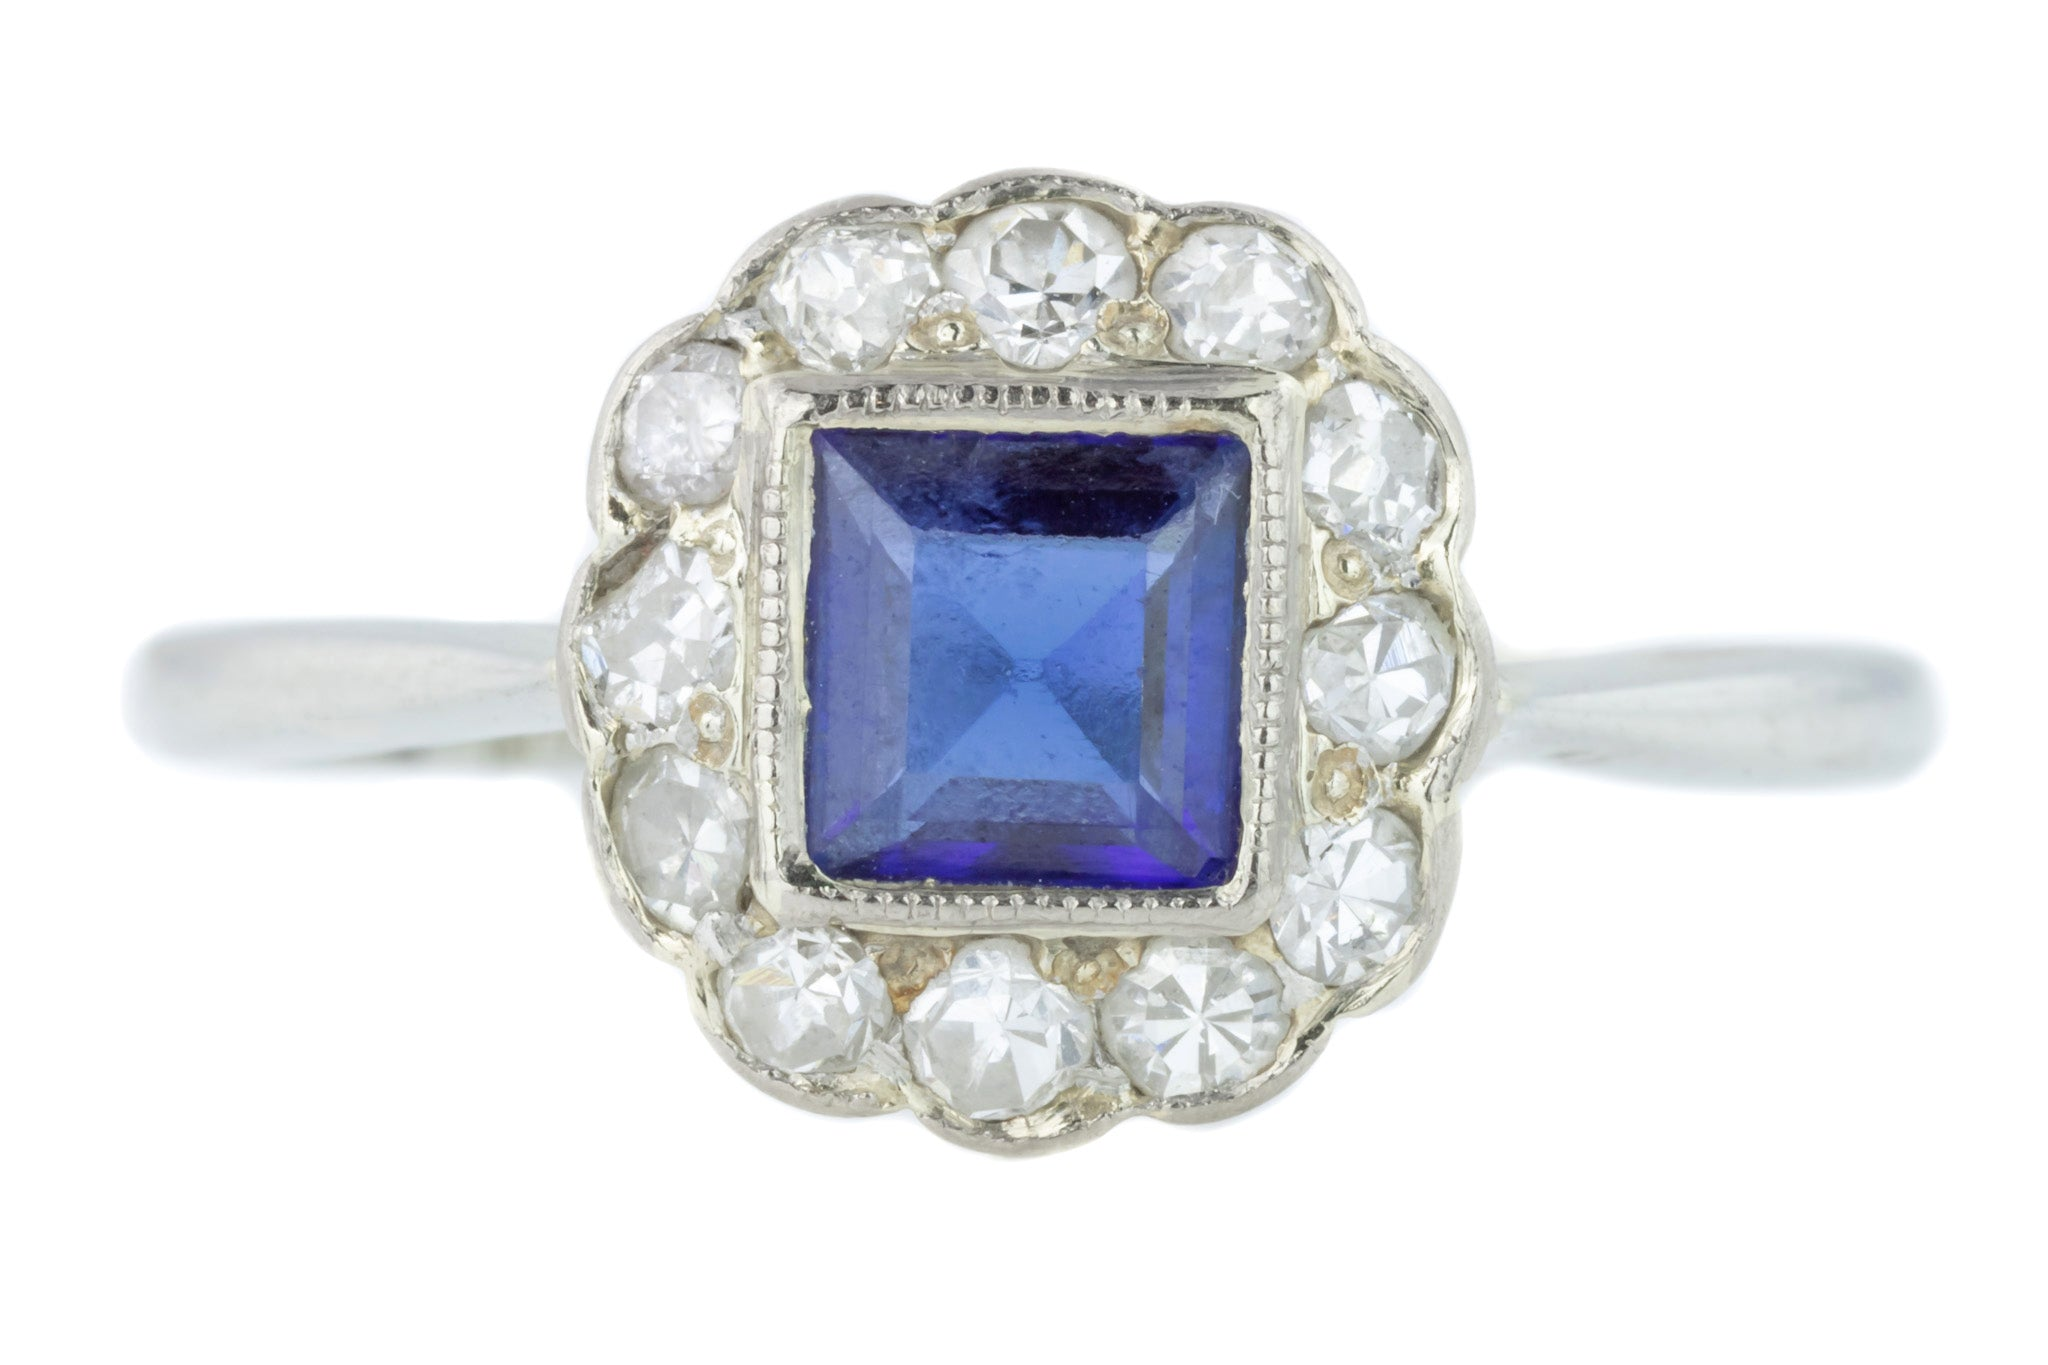 Edwardian 18ct gold and Platinum ring with sapphire and diamond cluster